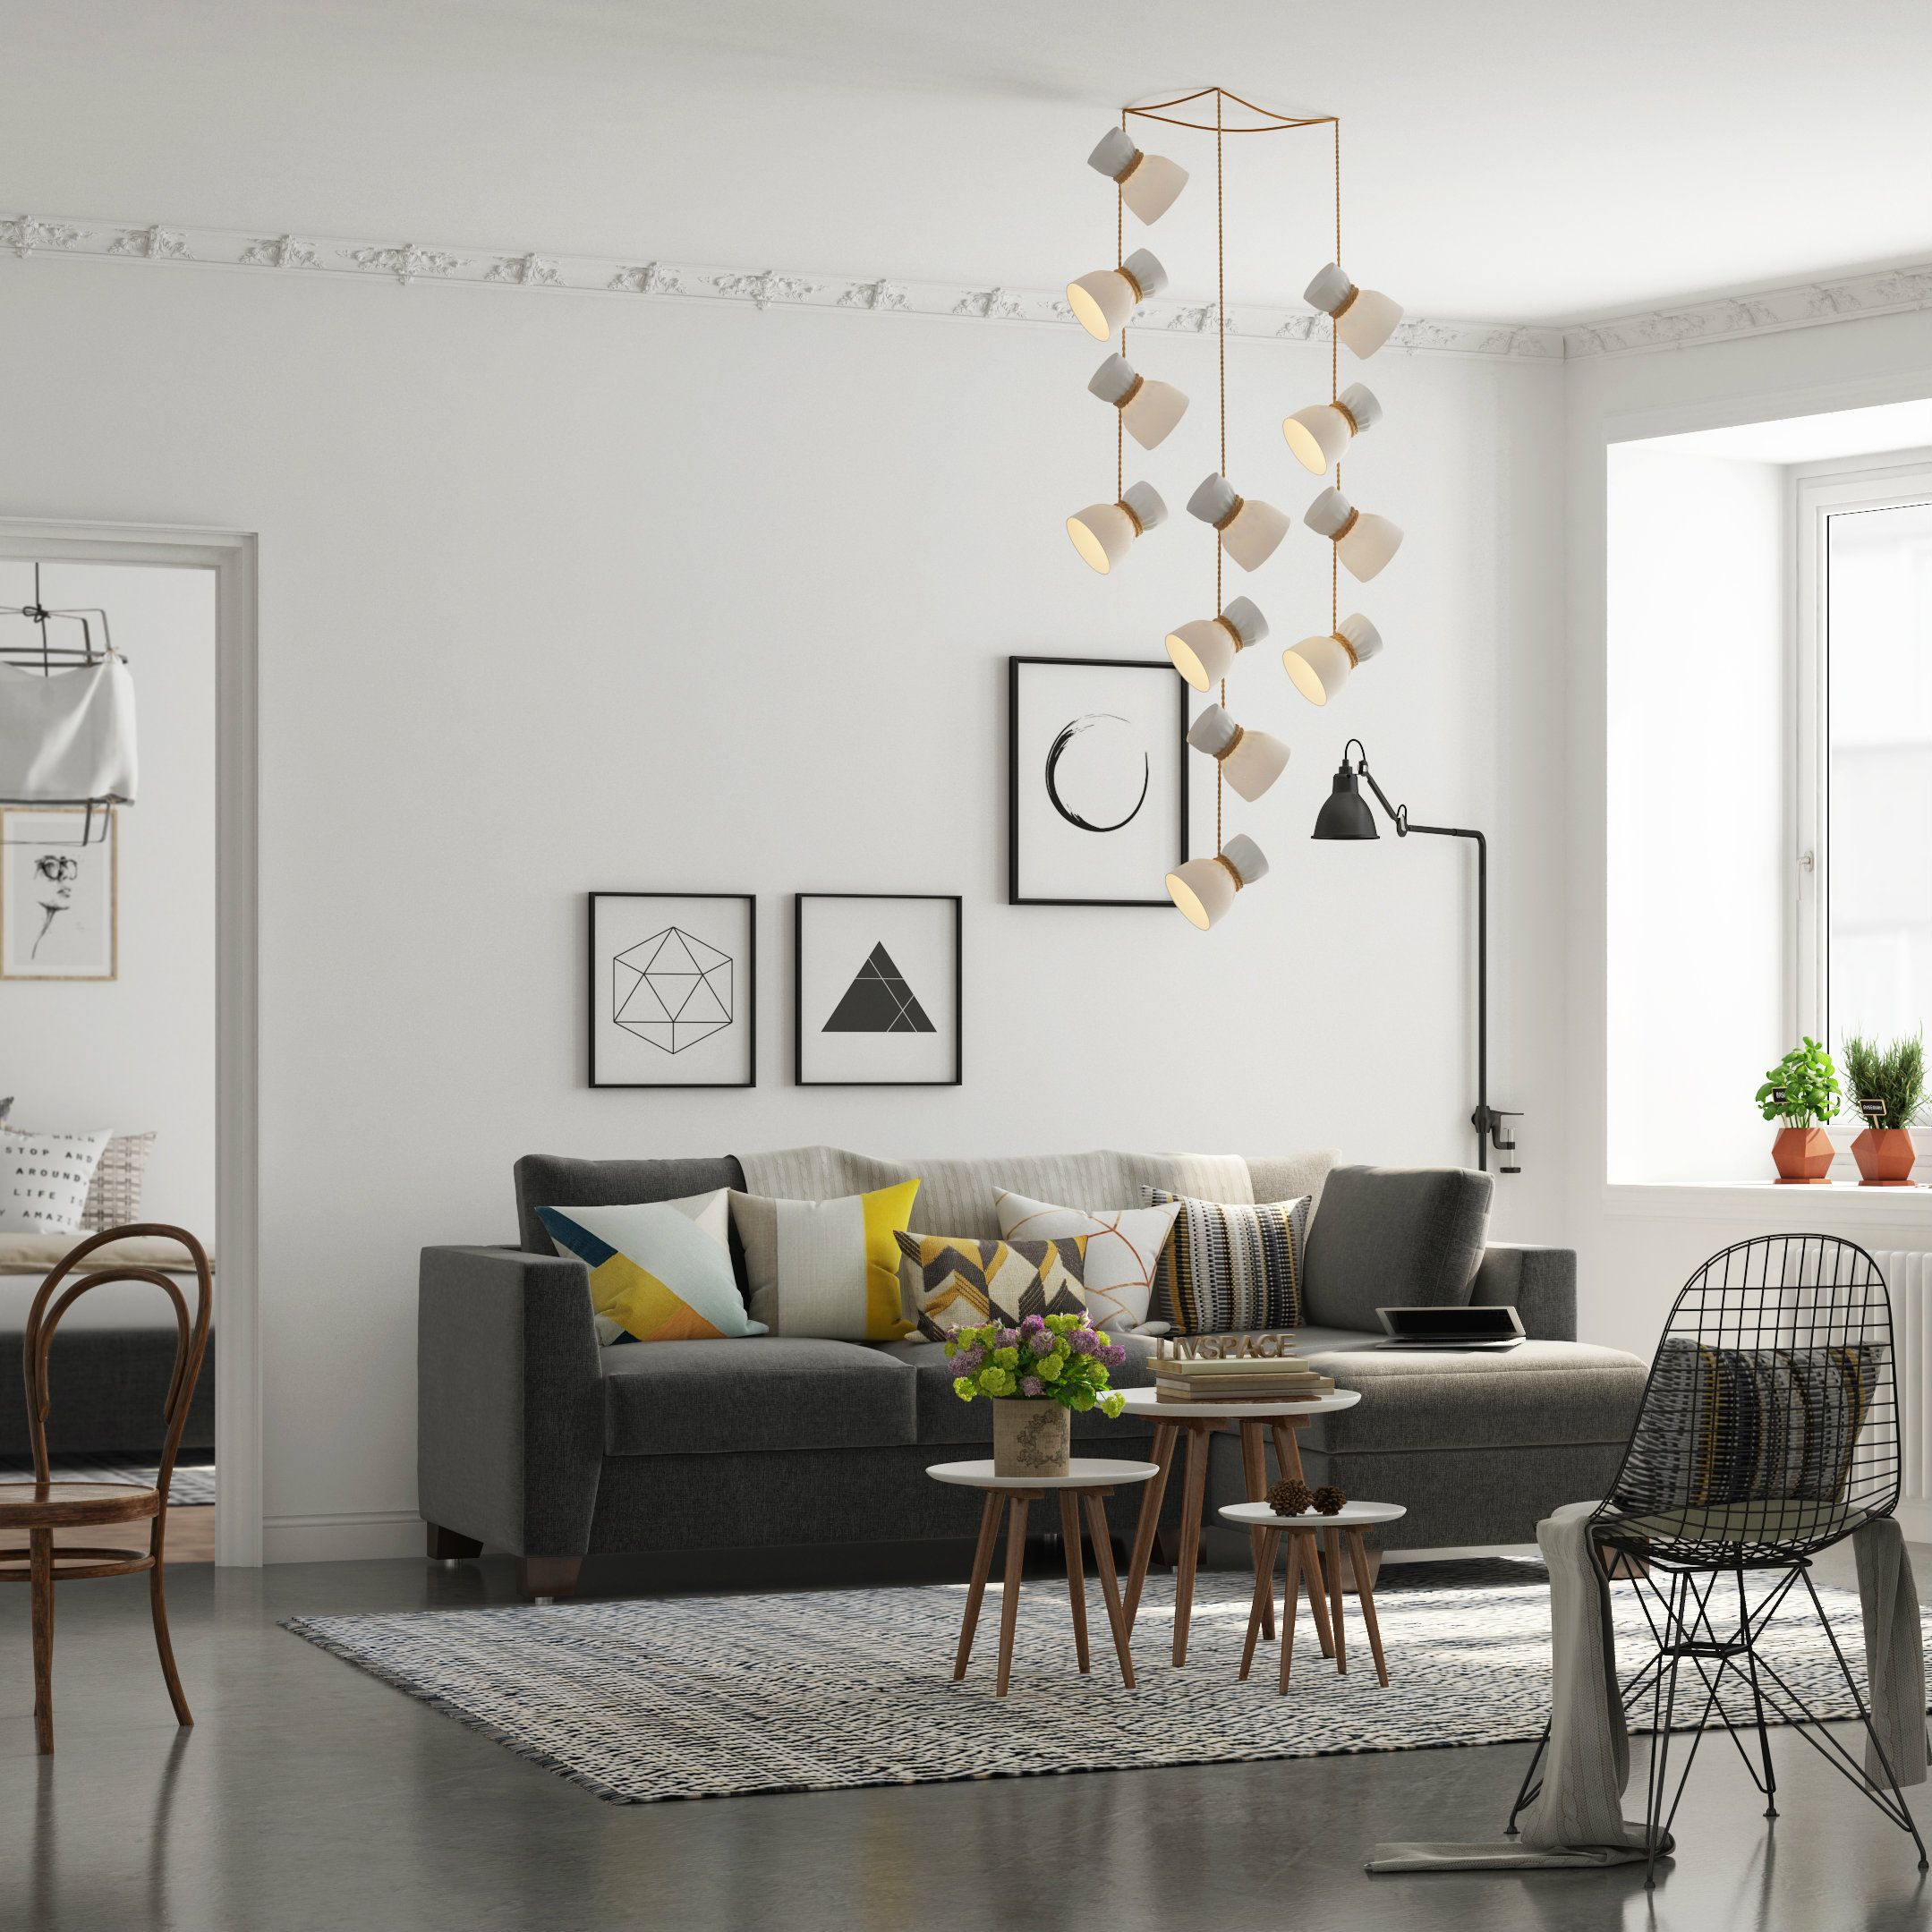 A minimalist living room with quirky lights contemporary lights modern furniture comfortable seating